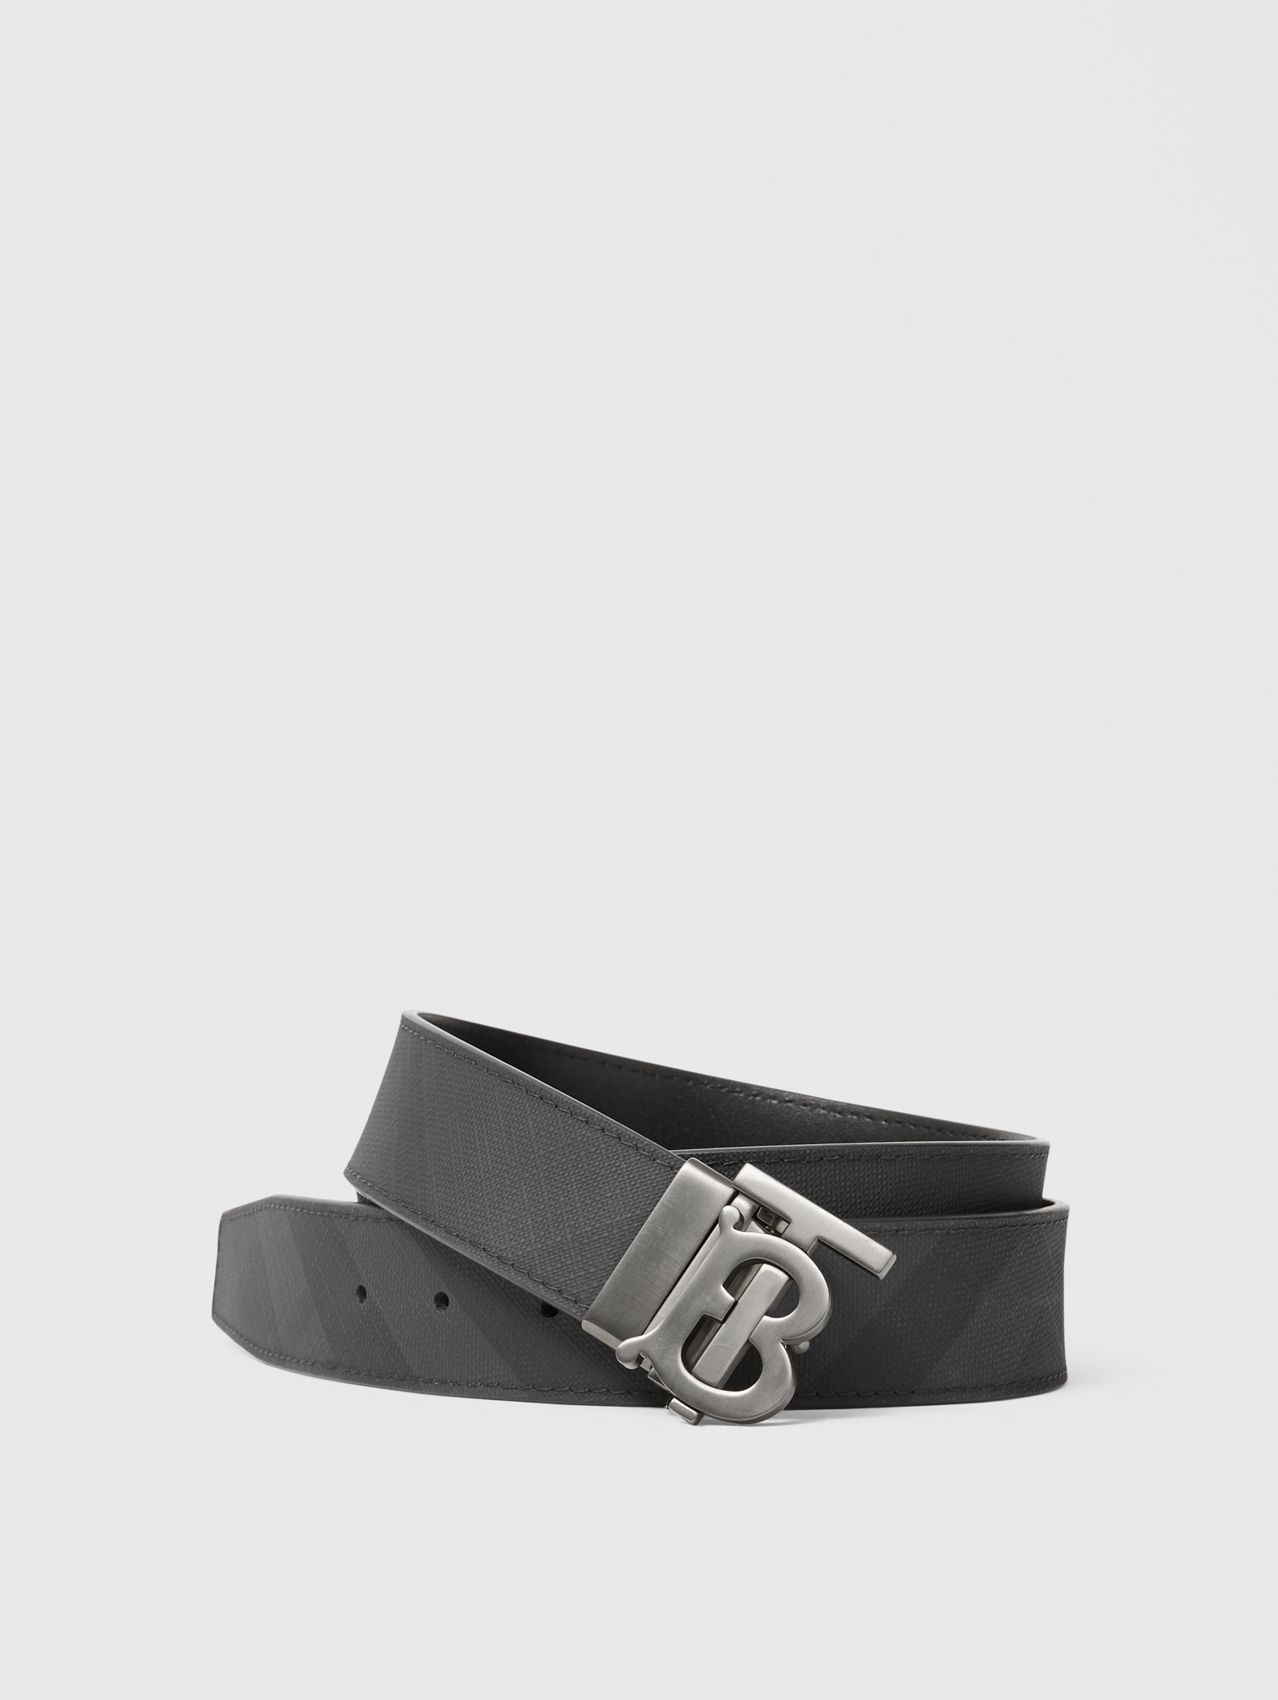 Reversible Monogram Motif London Check Belt in Dark Charcoal